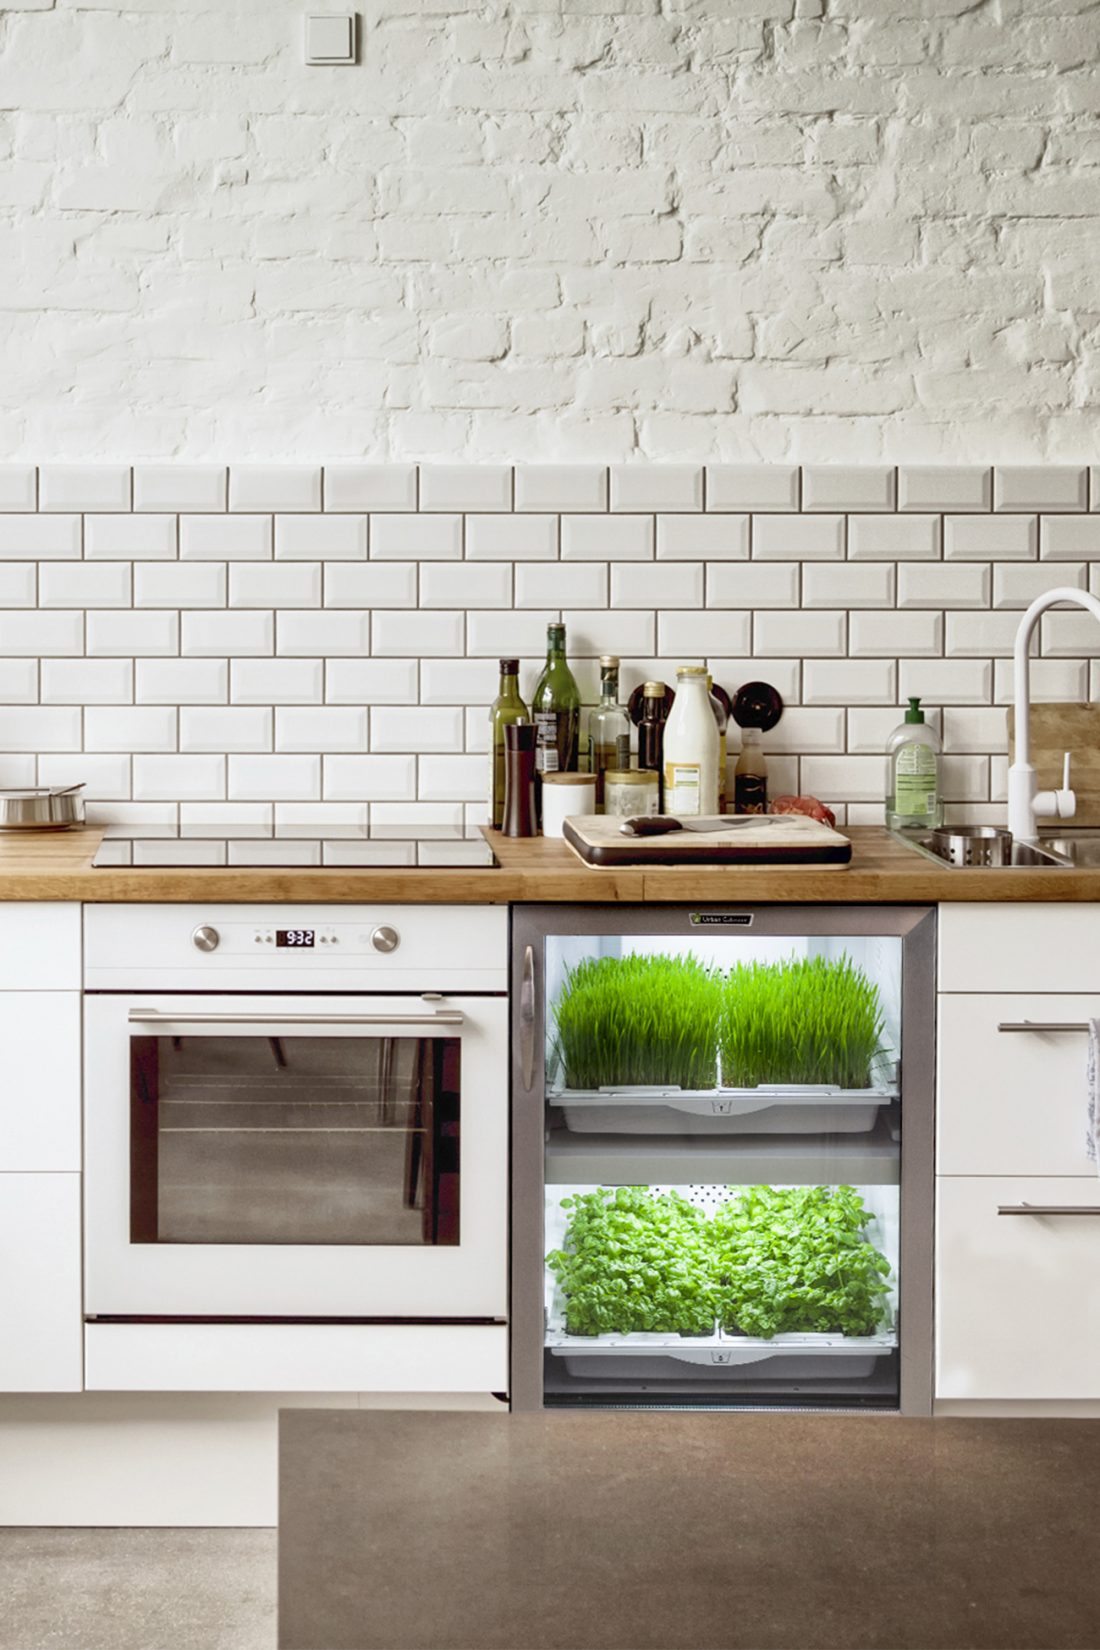 Urban Cultivator: Herbs at Home